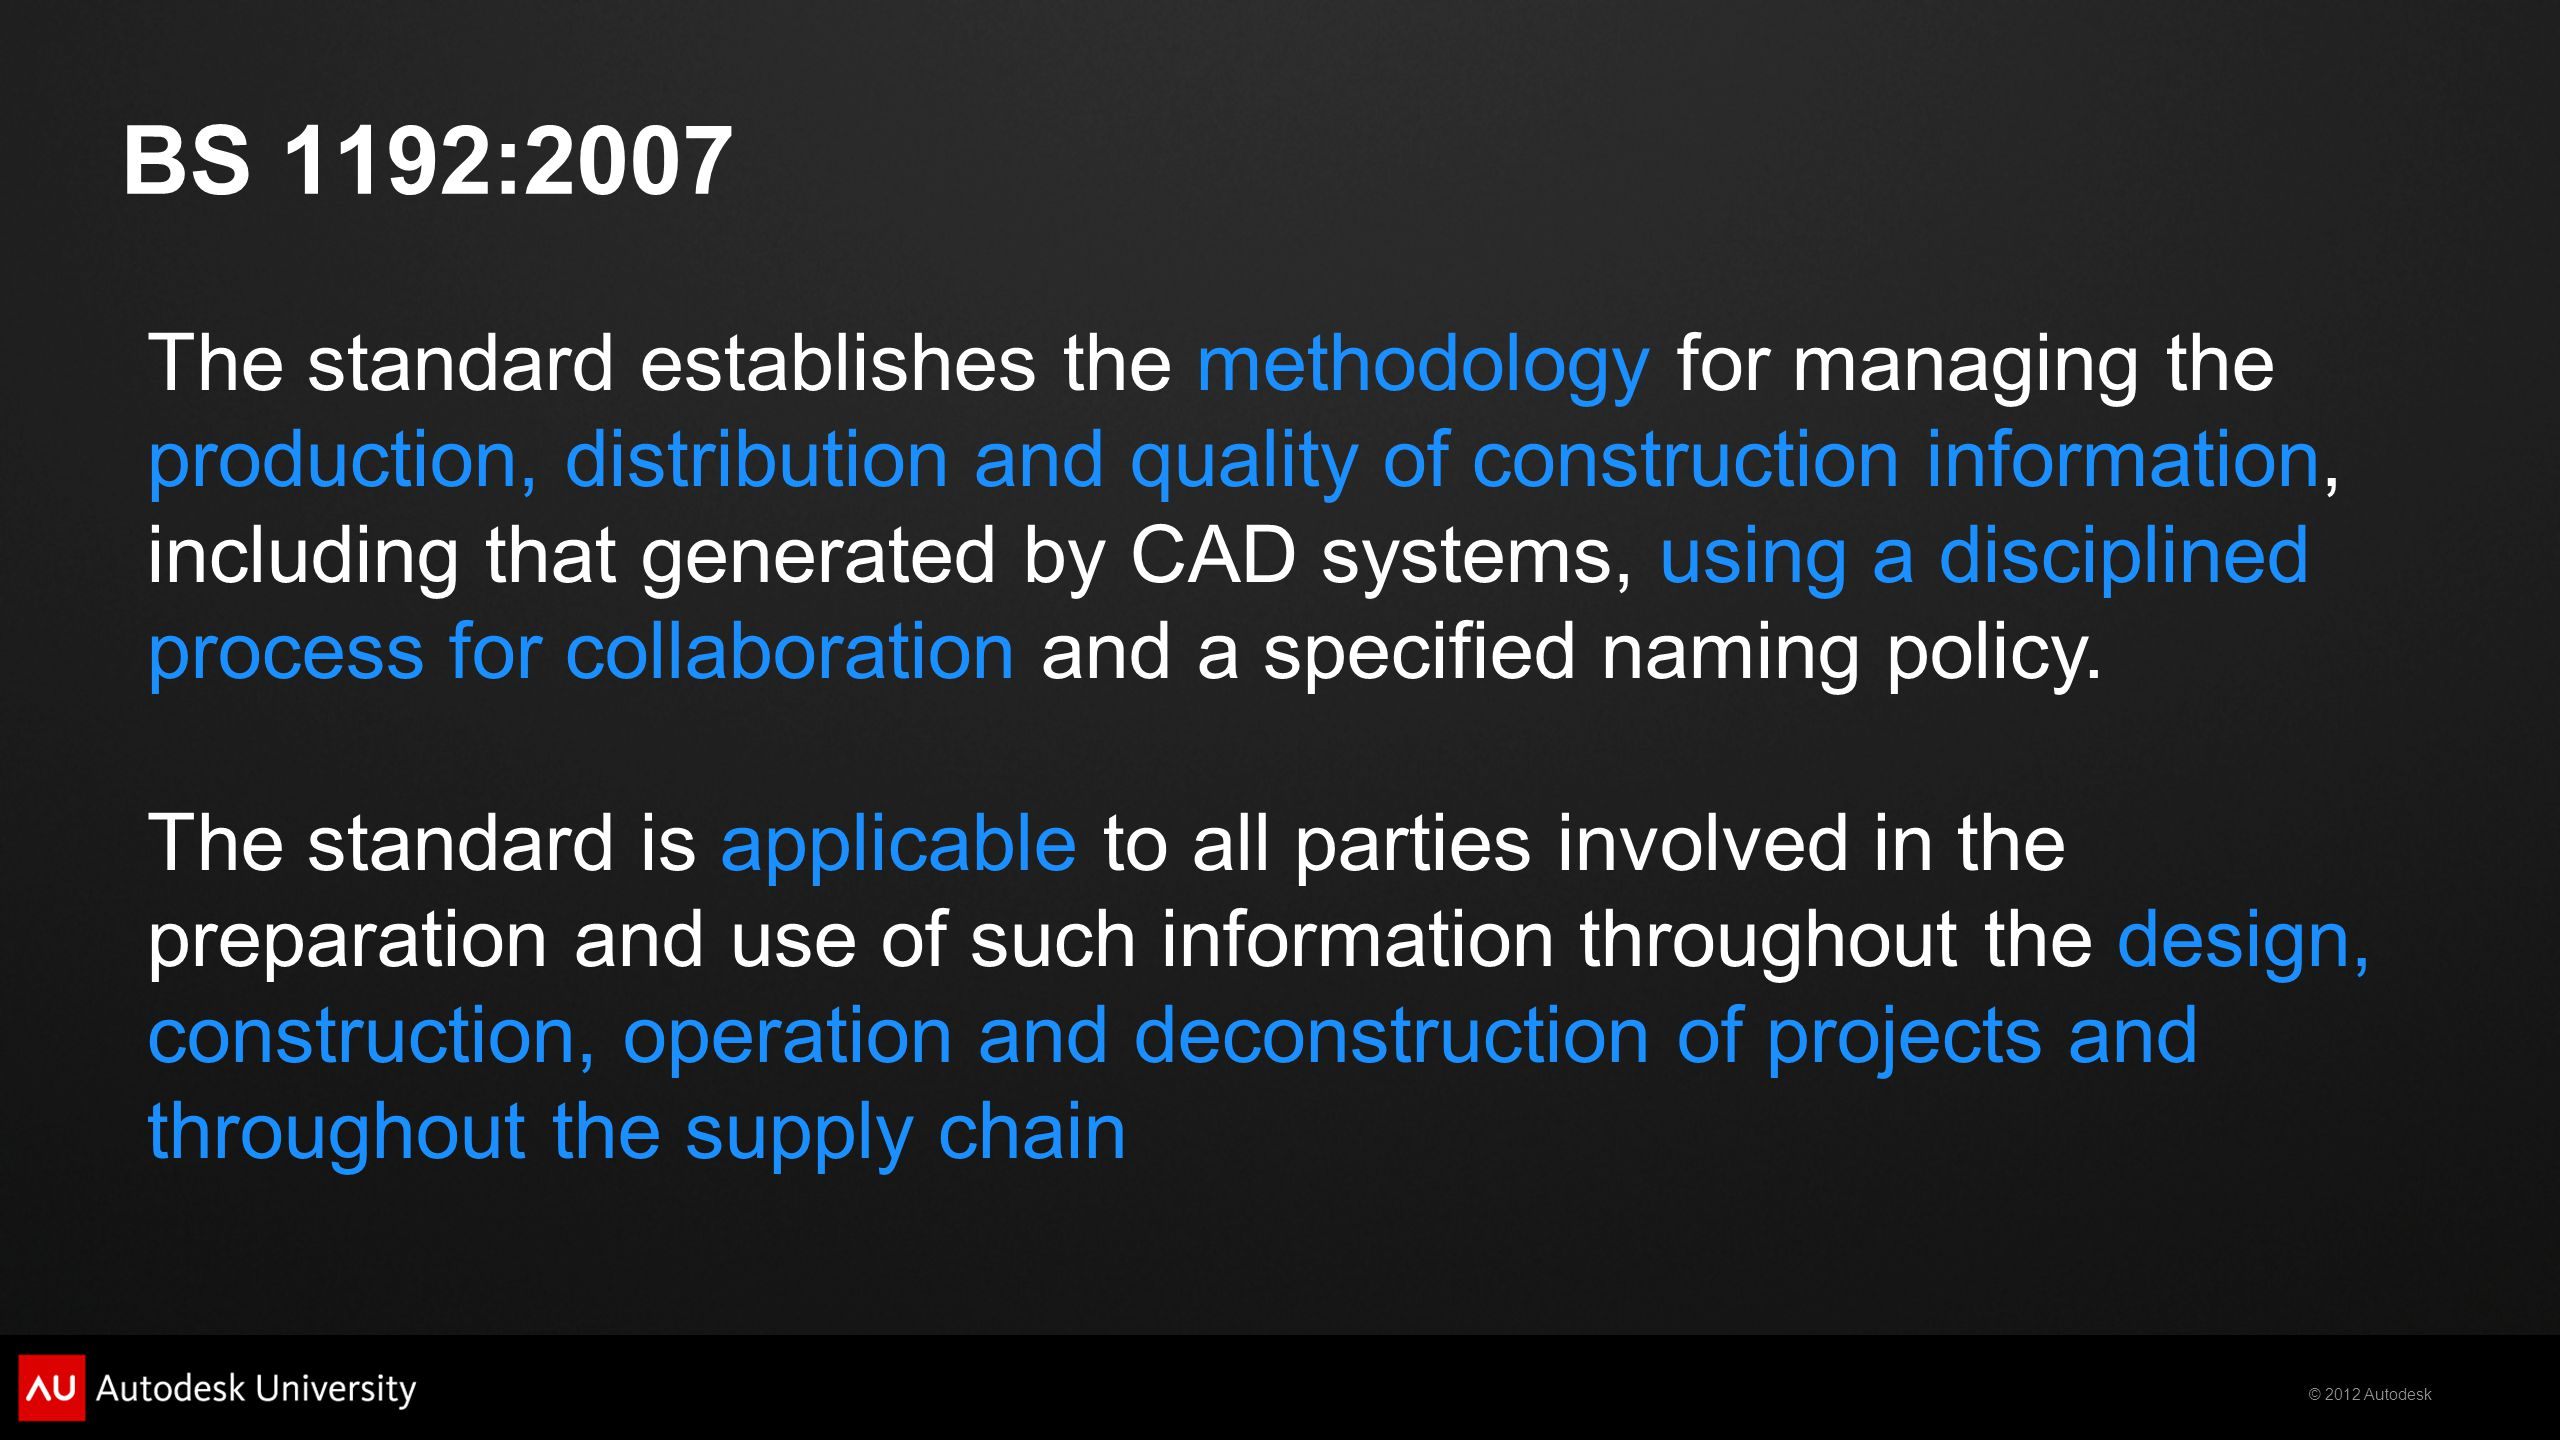 © 2012 Autodesk BS 1192:2007 The standard establishes the methodology for managing the production, distribution and quality of construction information, including that generated by CAD systems, using a disciplined process for collaboration and a specified naming policy.